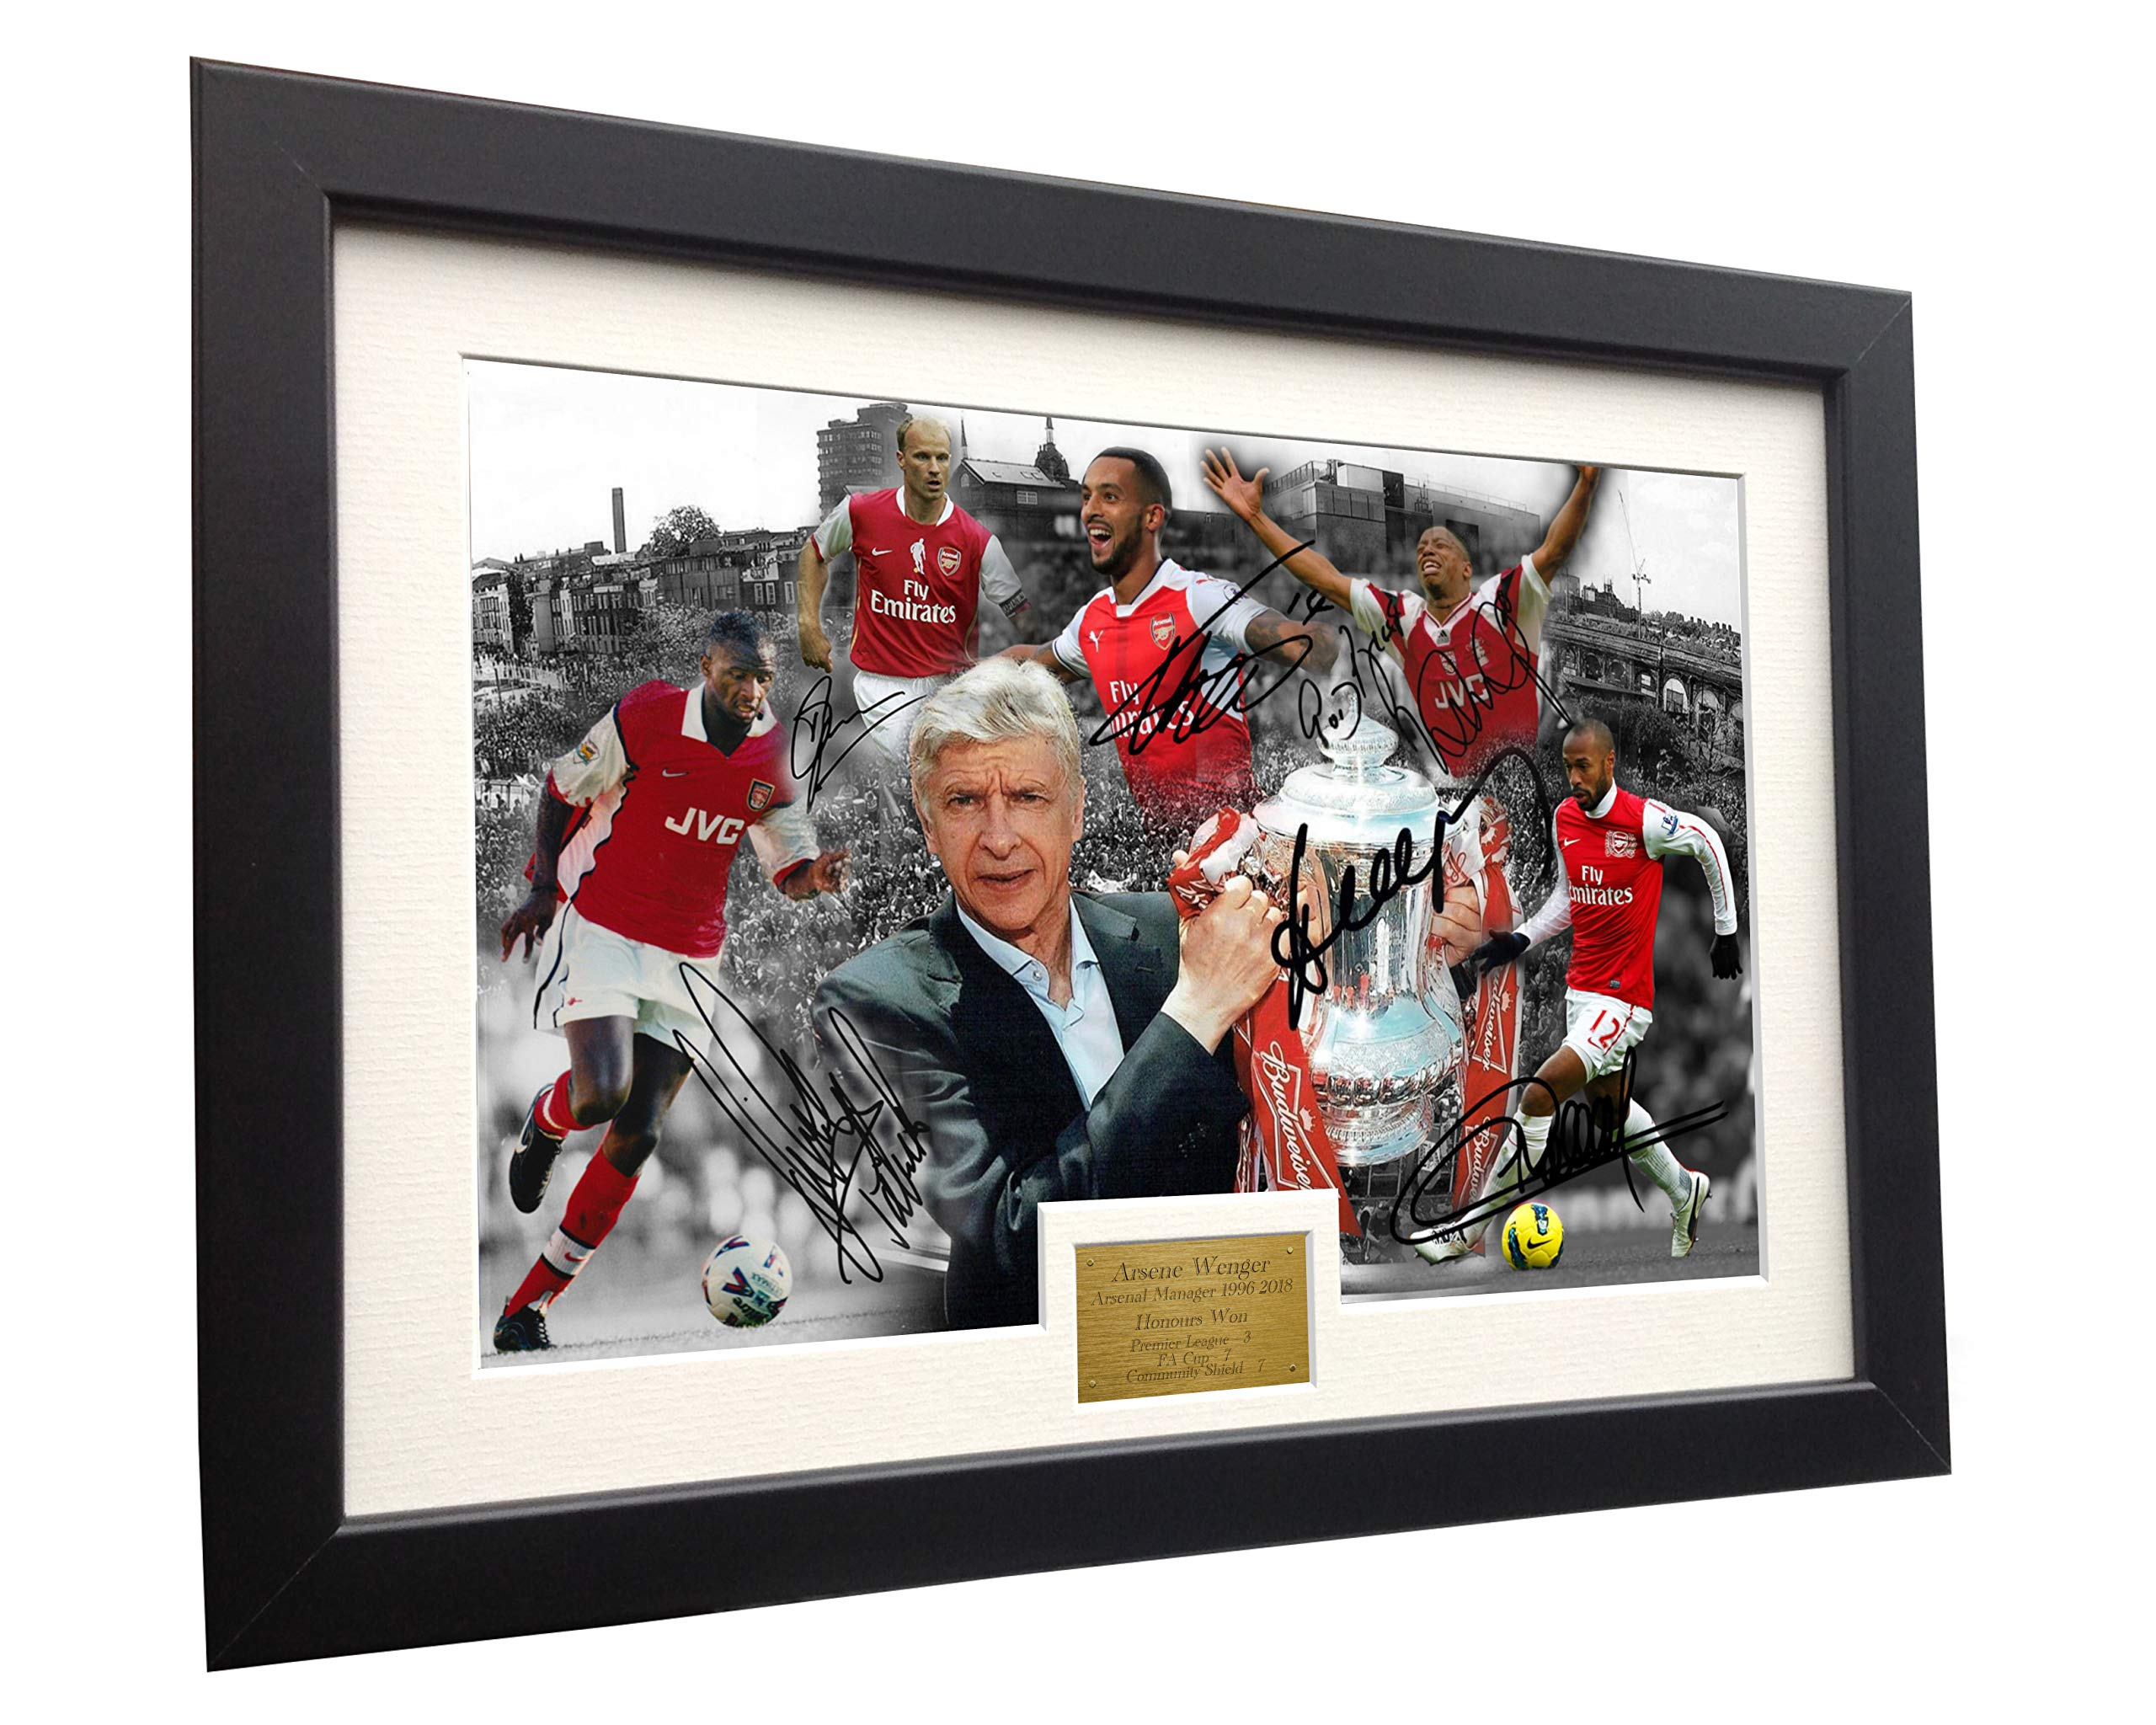 Arsene Wenger''CELEBRATION'' 12x8 A4 Signed Arsenal - Thierry Henry- Patrick Vieira- Dennis Bergkamp- Ian Wright - Theo Walcott - Autographed Photo Photograph Picture Frame Soccer Gift by Kitbags & Lockers